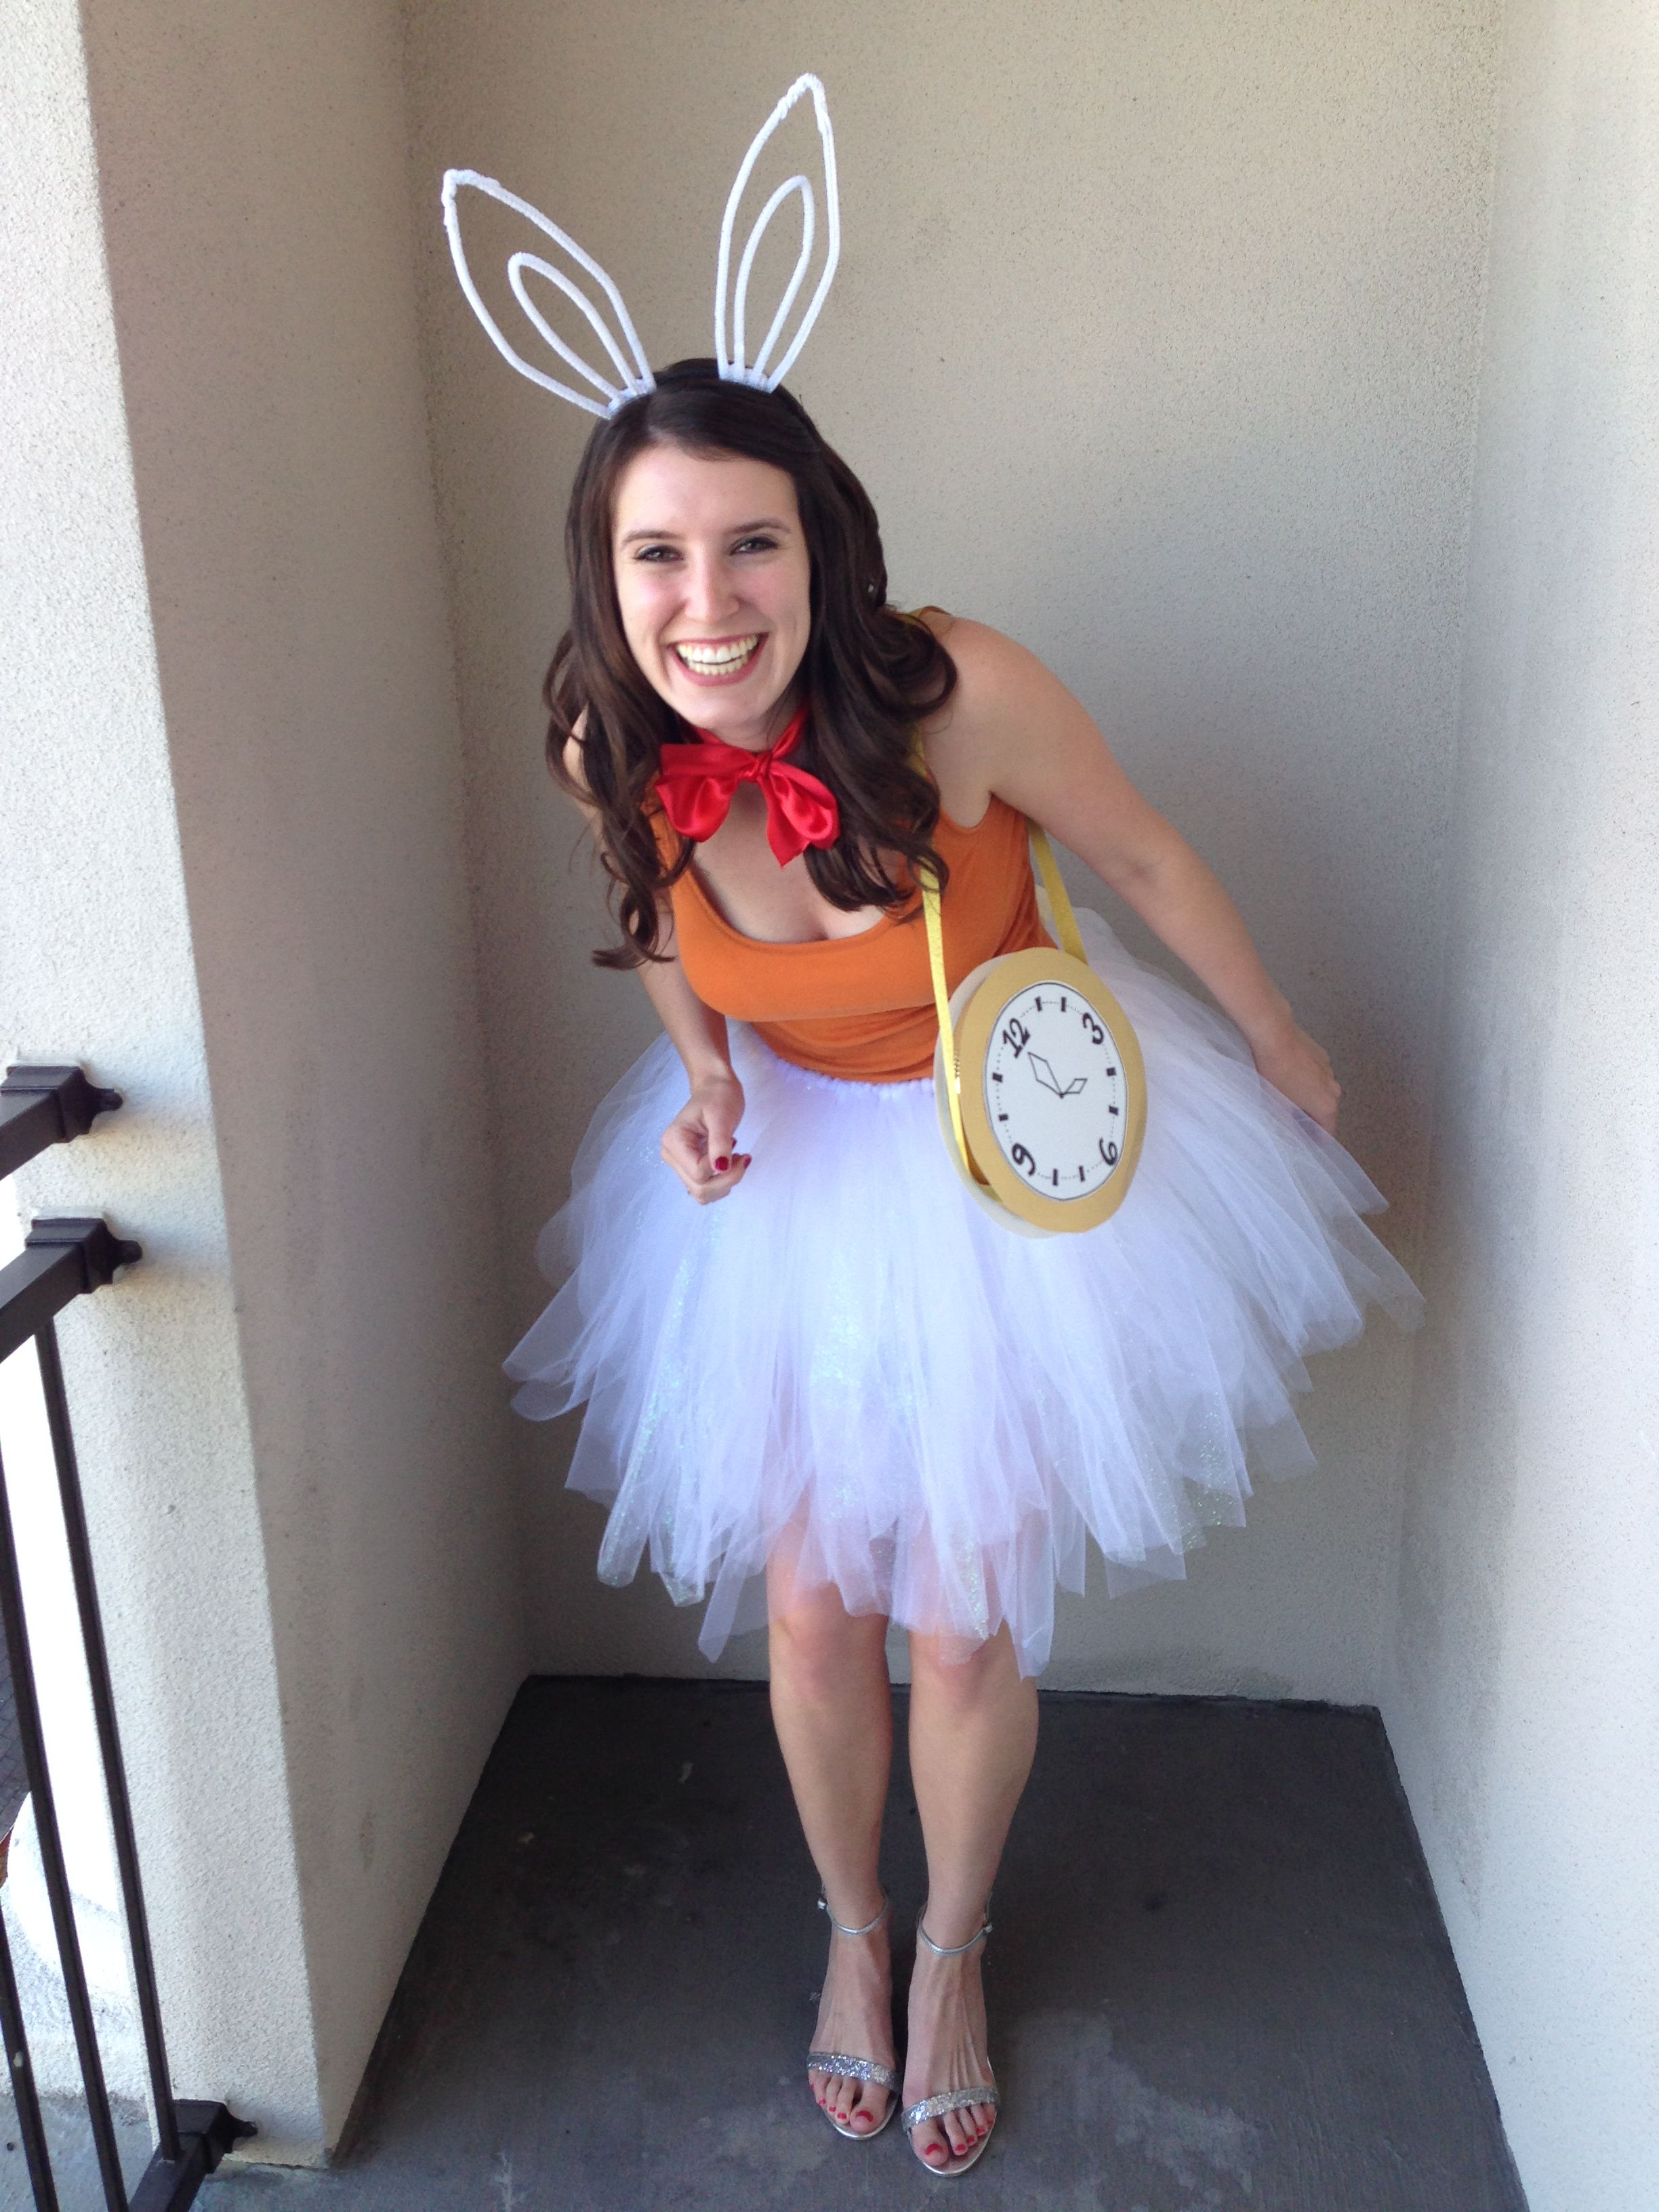 Popsugar disney costume diy feature costumes princess and box halloween disney costumes a friend of mine sent me a link to popsugars list of adult diy disney costumes think outside the princess box solutioingenieria Images